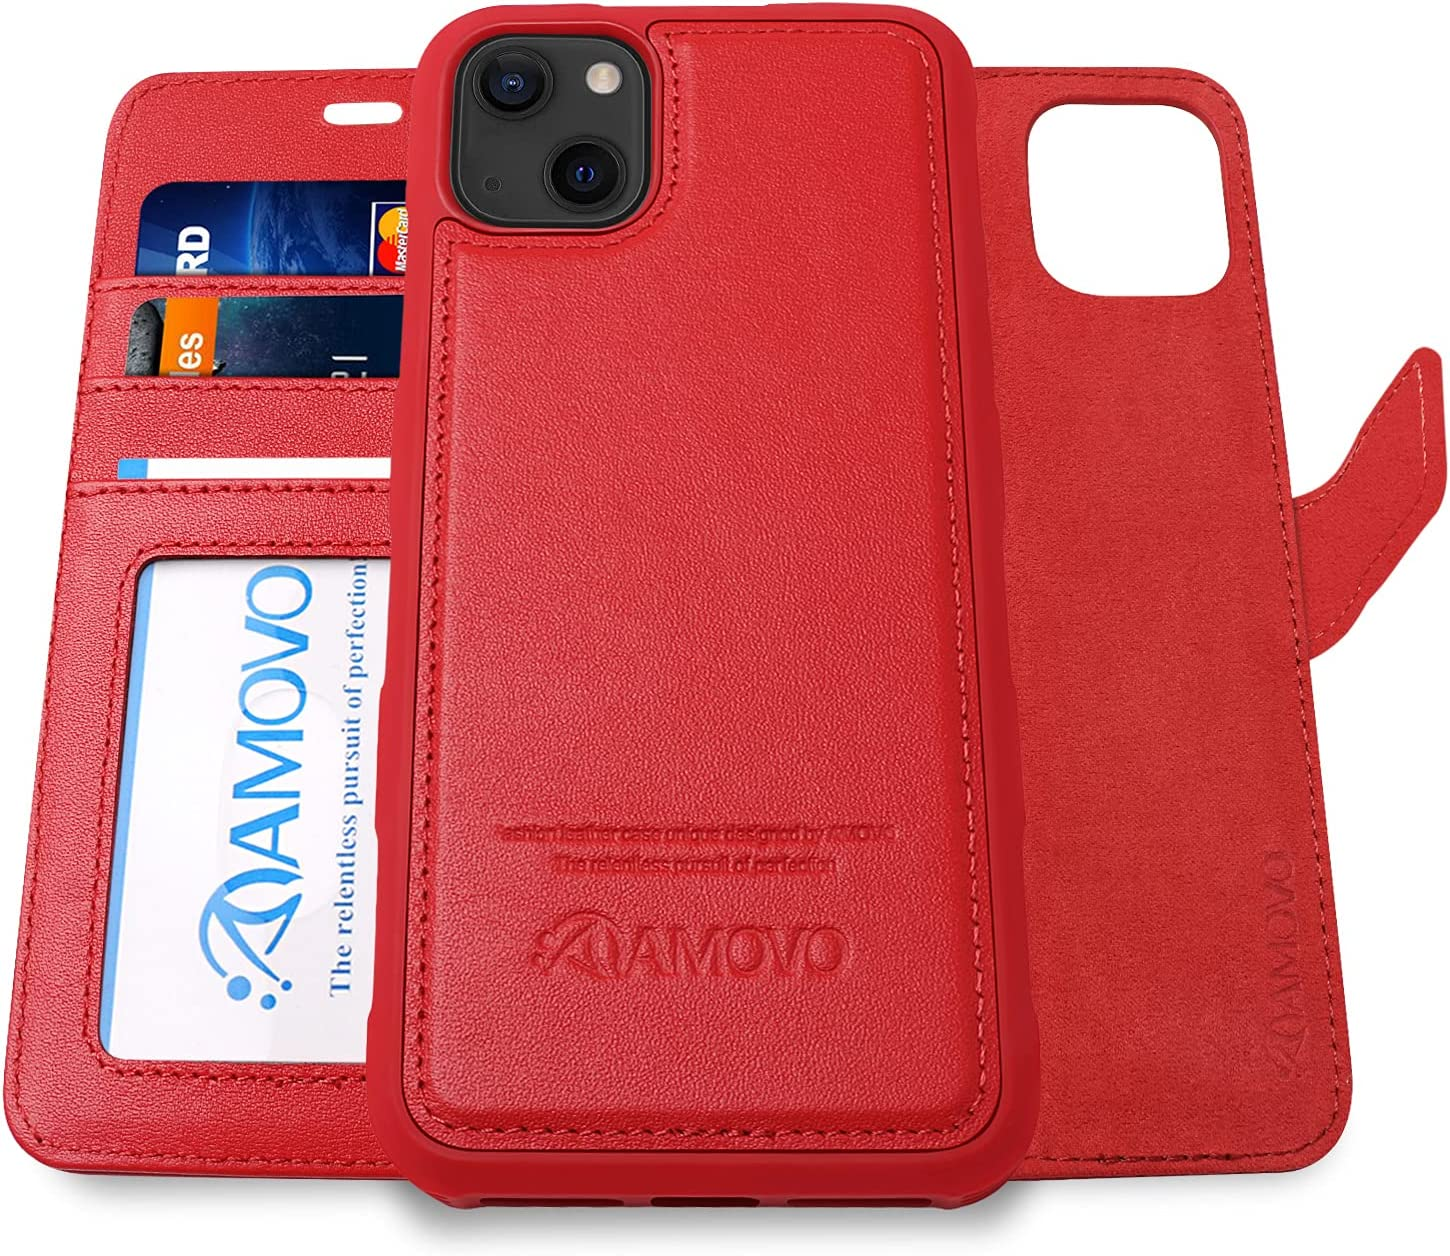 AMOVO Genuine Leather Case Compatible with iPhone 13 Case Wallet Magnets Detachable Wallet Case Leather Flip Phone Case [Wireless Charging][Wristband] for iPhone 13 (for iPhone 13, Real Leather Red)